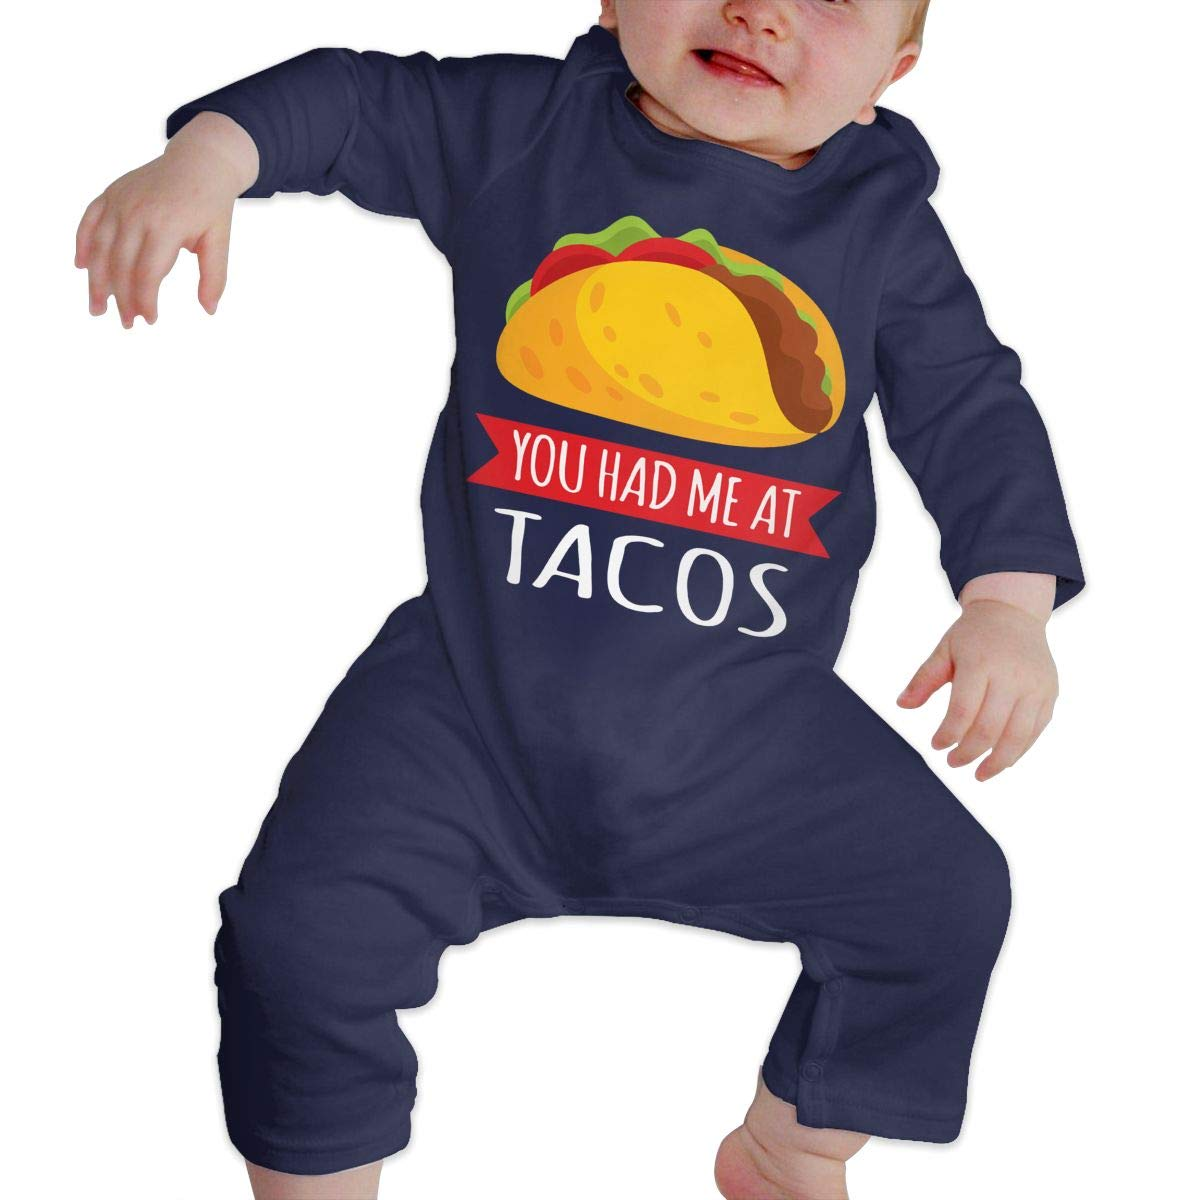 LBJQ8 You Had Me at Tacos2 Newborn Infant Baby Girls Essential Basic Playsuit Outfit Clothes